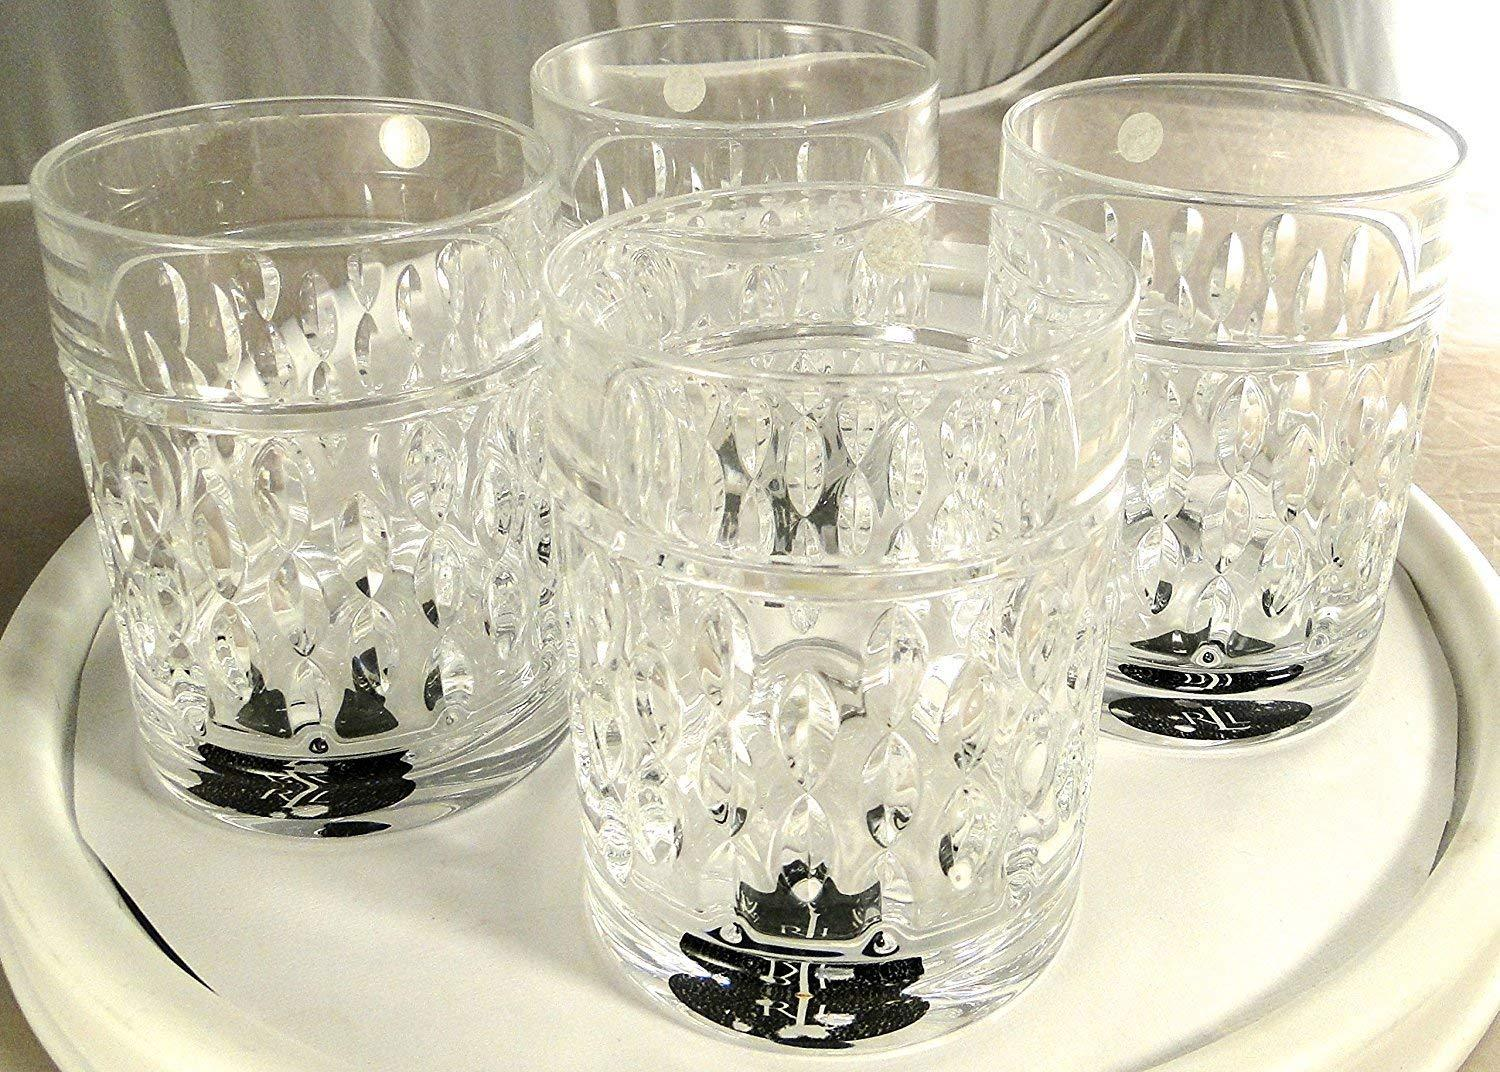 Ralph Lauren Aston Crystal Double Old Fashioned Glasses Set of 4